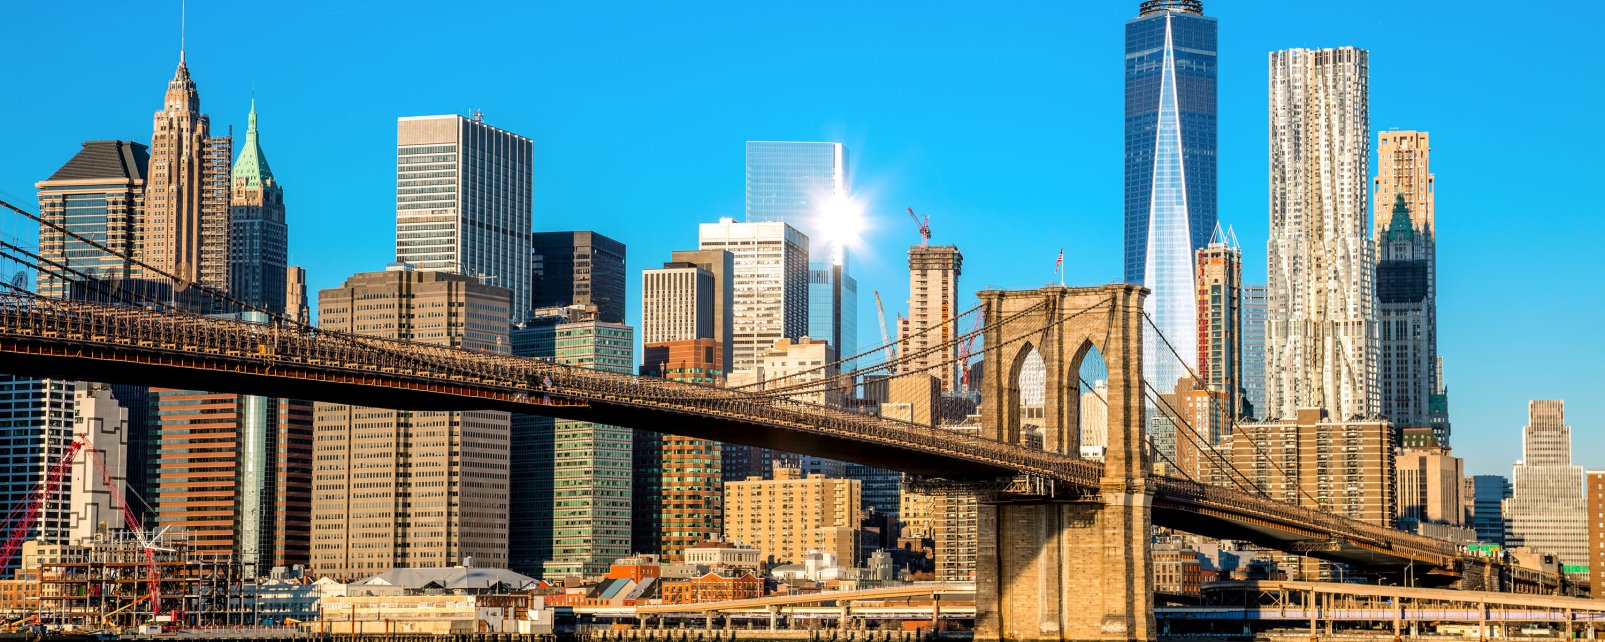 Viaggi new york stati uniti guida new york con easyviaggio for What to do in new york new york